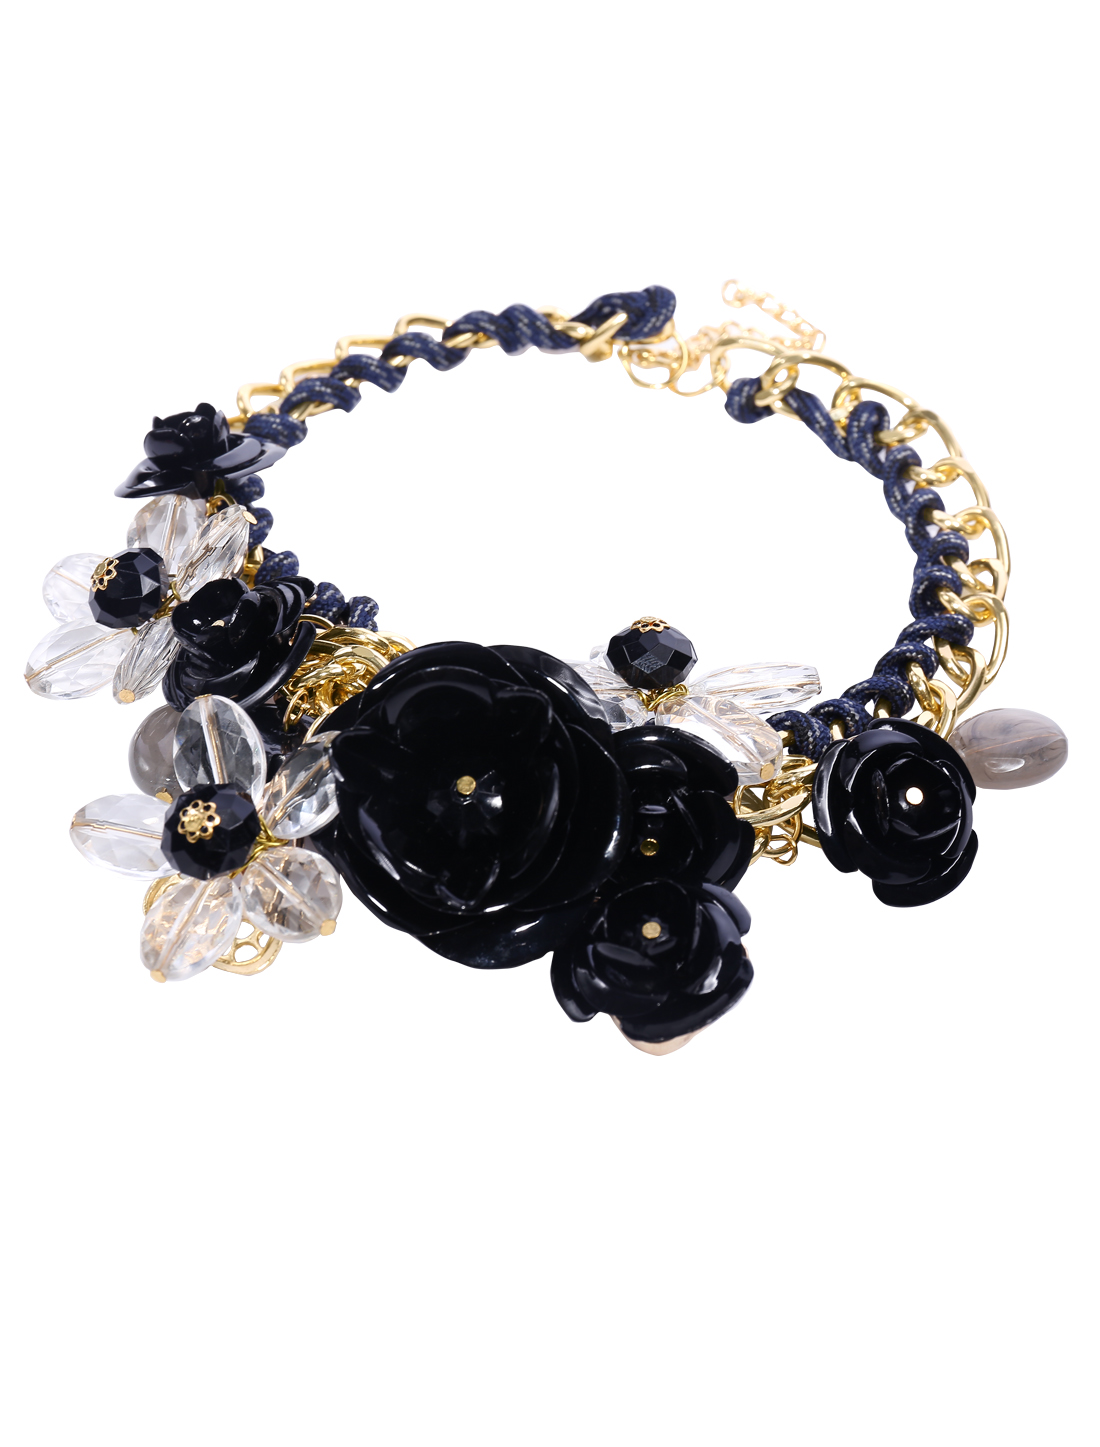 Gold Chain Crystal Black Flower Statement Pendant Bib Necklace Choker